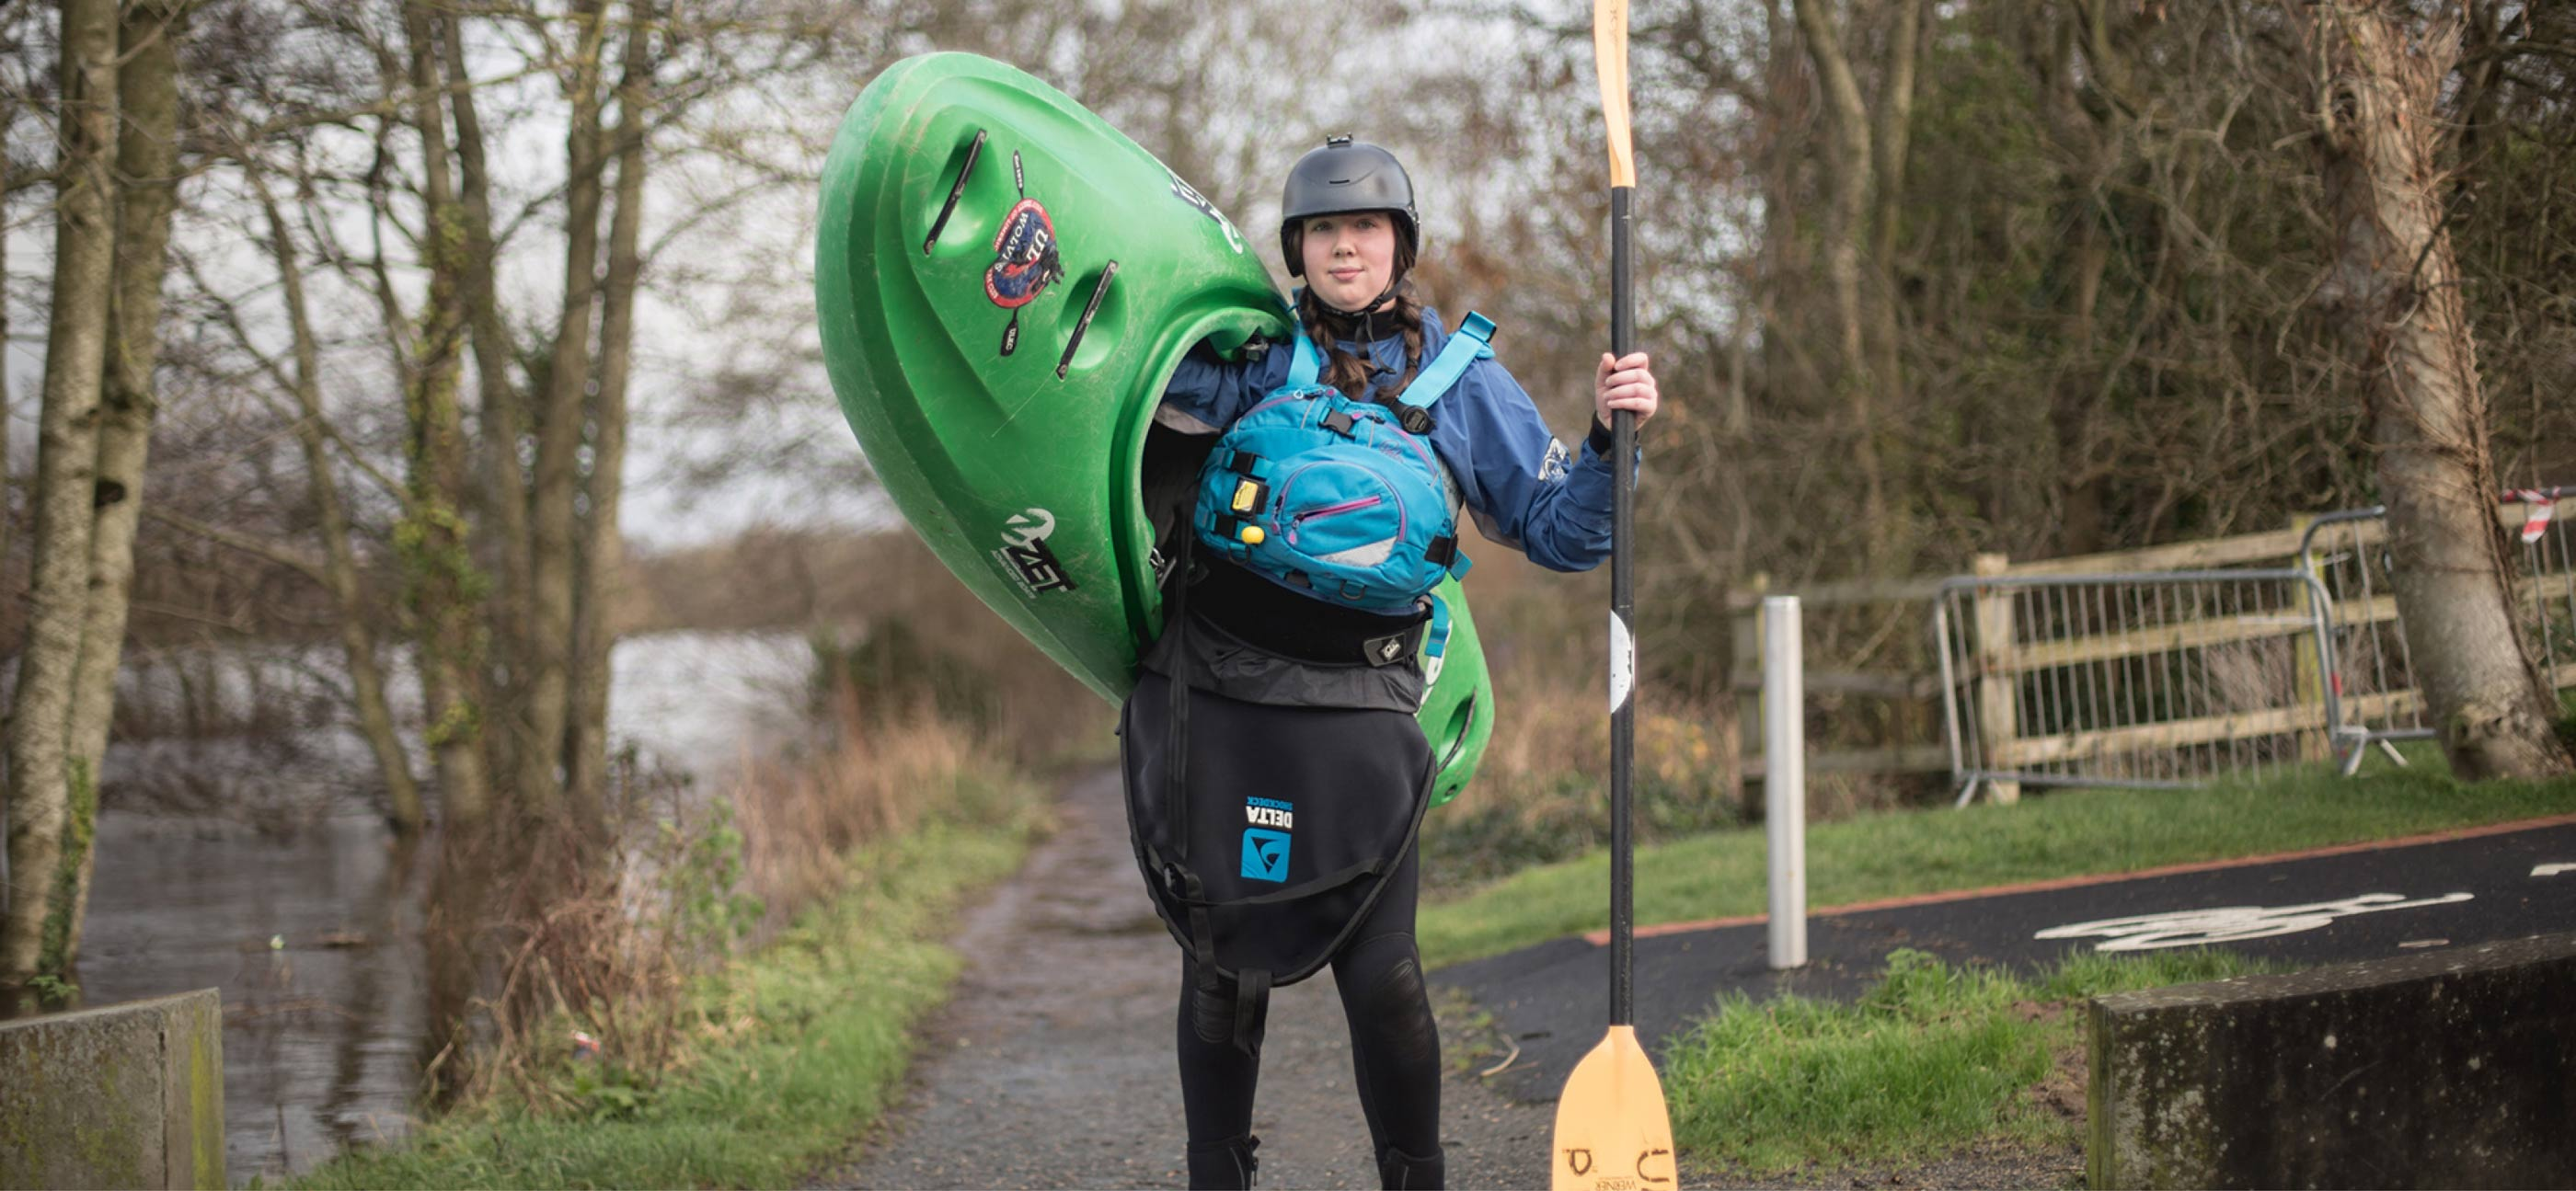 University of Limerick undergraduate campaign photography production student in kayaking gear